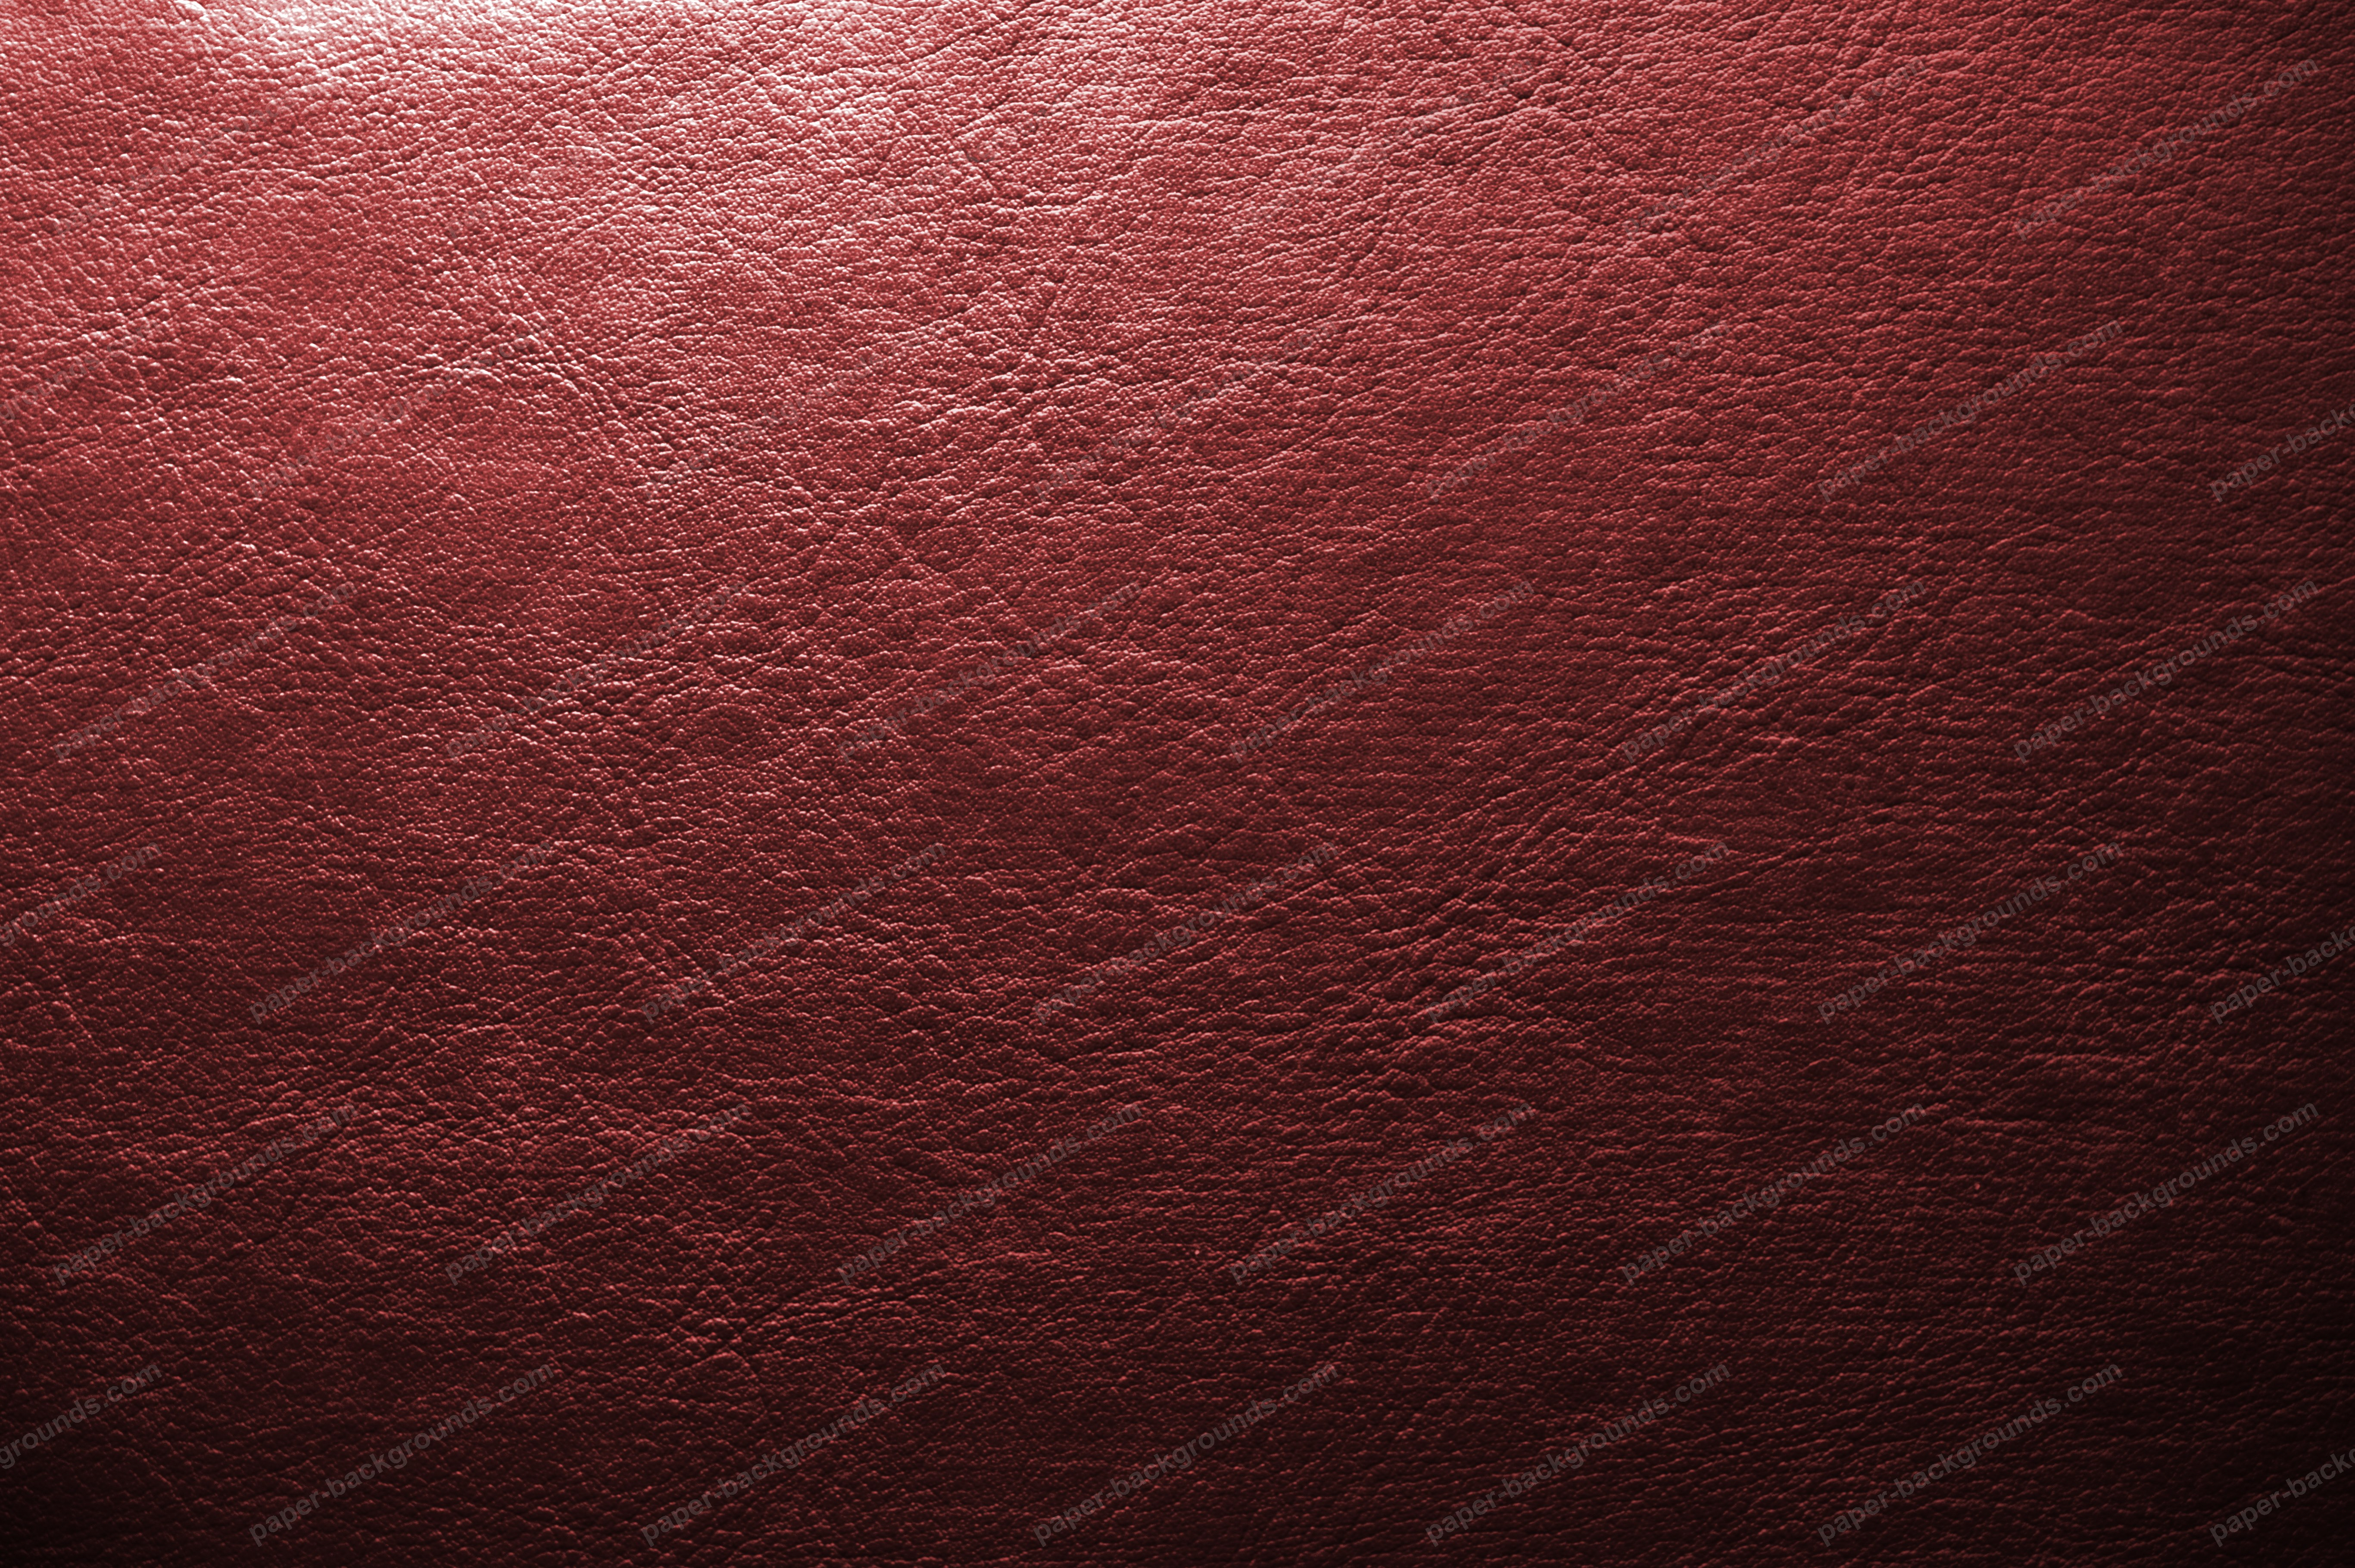 red textured background hd - photo #40